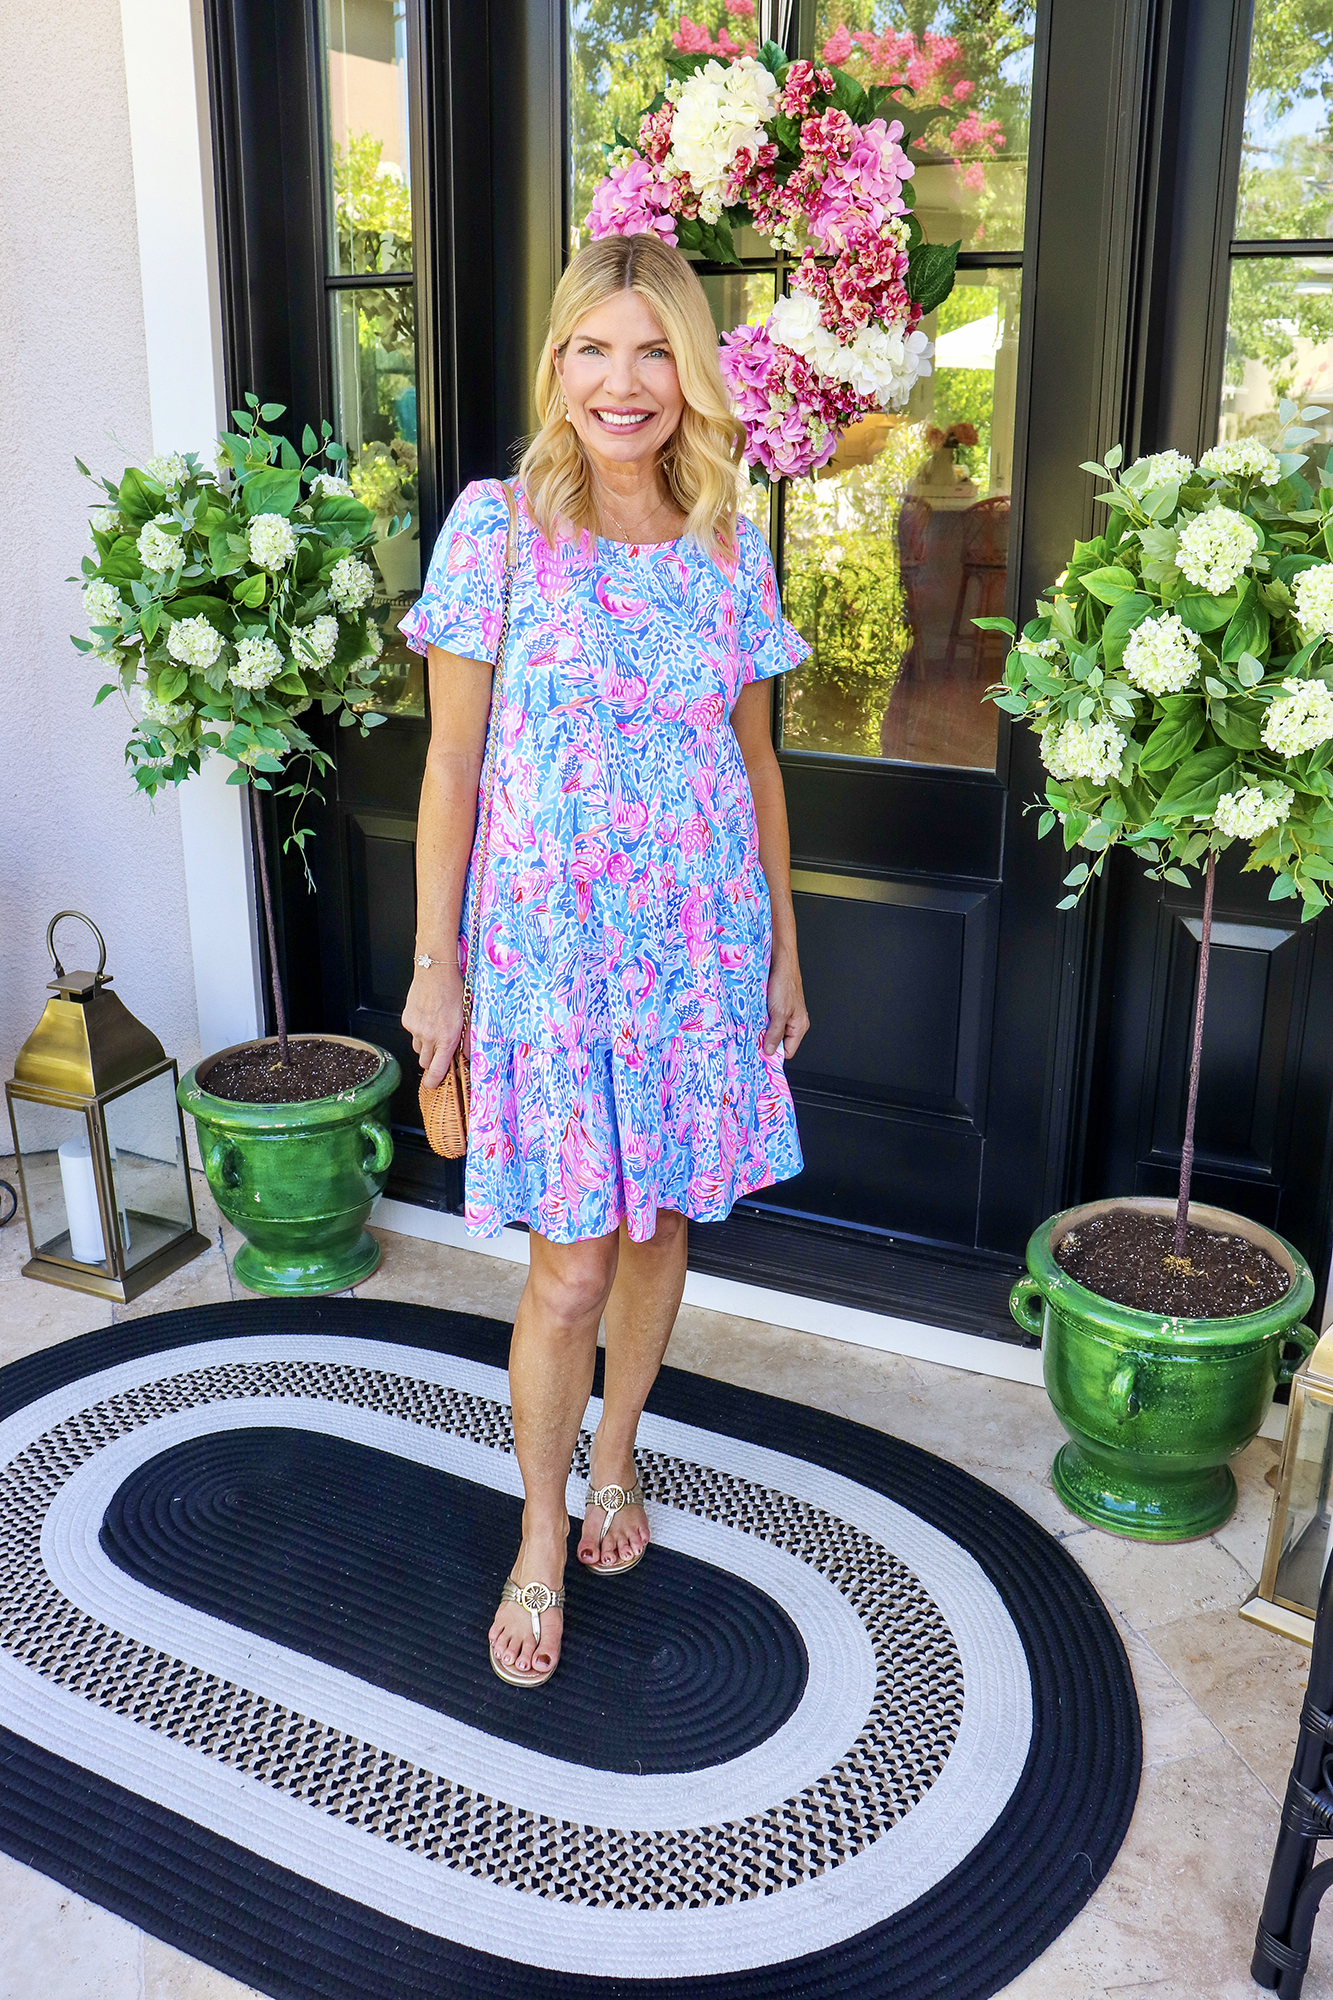 New Lilly Pulitzer Dresses - Summer knit options that are affordable & classy. New alpha style of sizing so it's so easy to order! $98-$118 options.